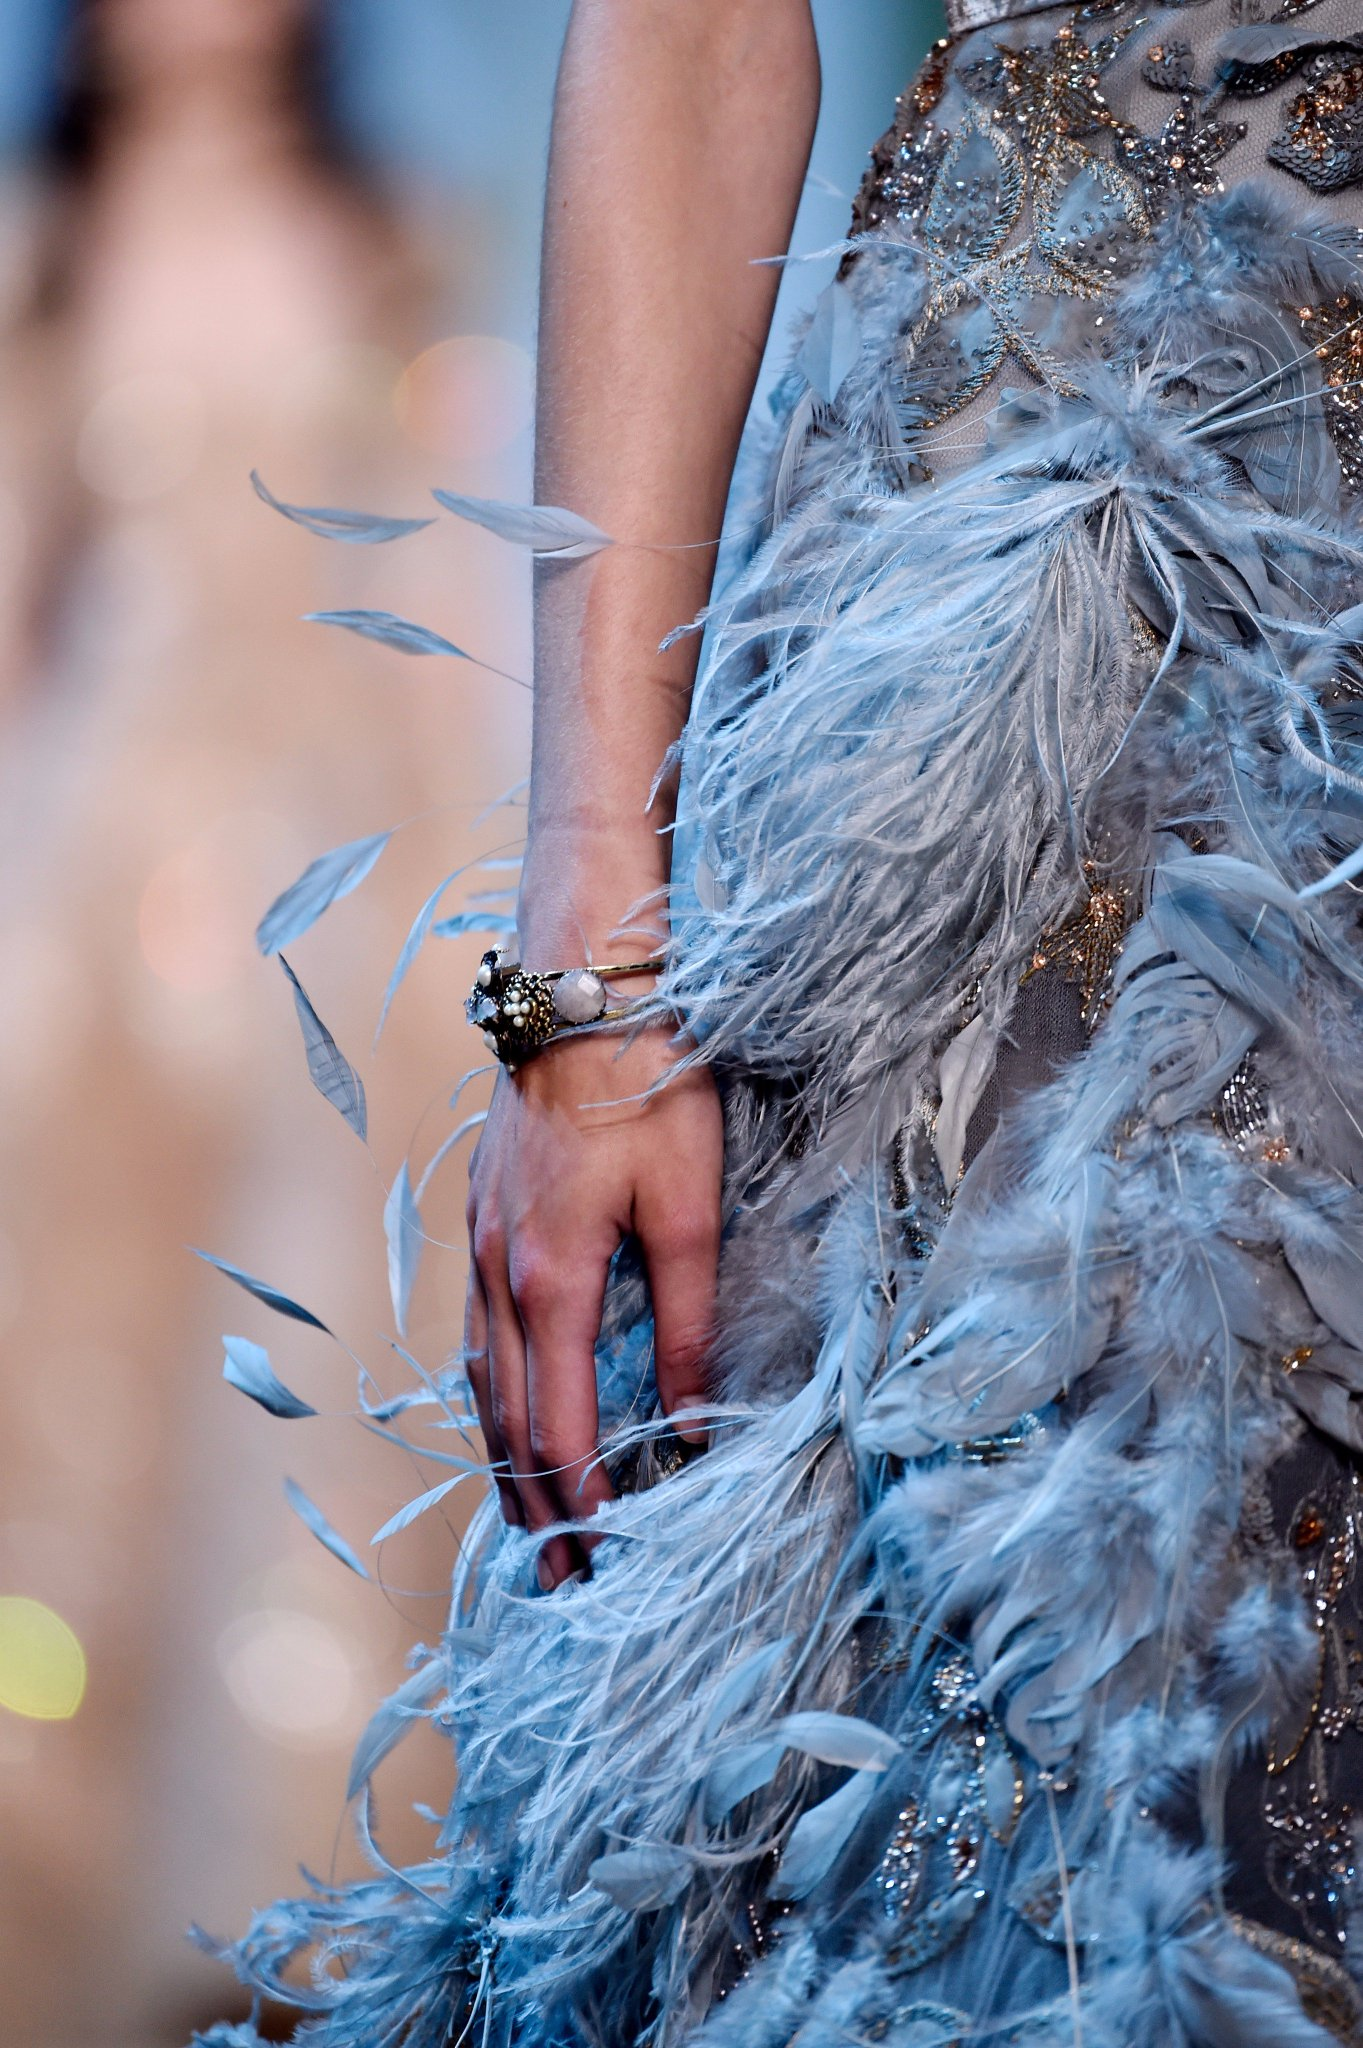 A closer look at the details of the ELIE SAAB Haute Couture Autumn Winter 2017-18 Show #ATaleOfFallenKings https://t.co/QkO3y03u8v